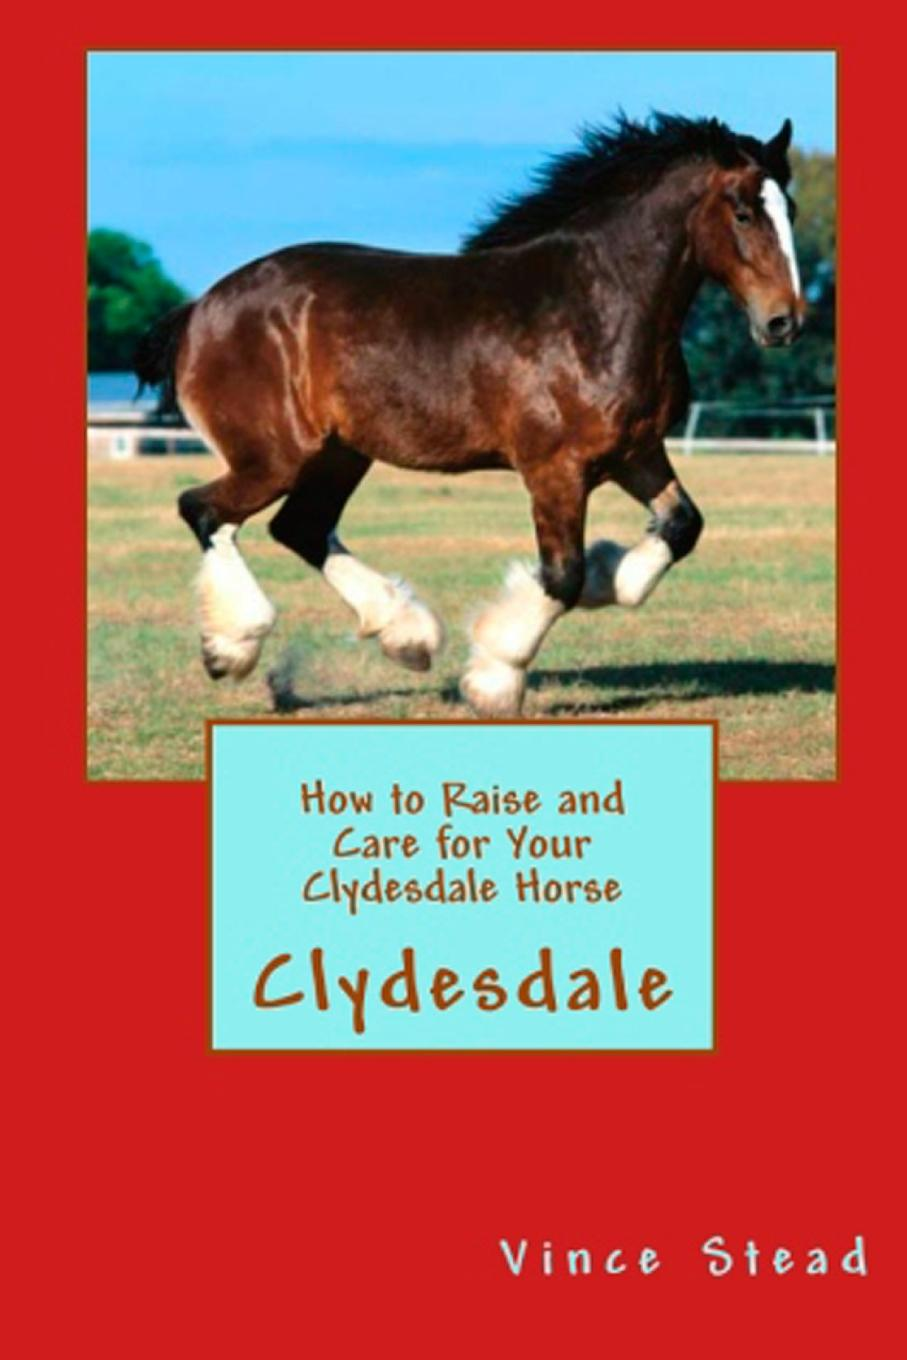 где купить Vince Stead How to Raise and Care for Your Clydesdale Horse по лучшей цене